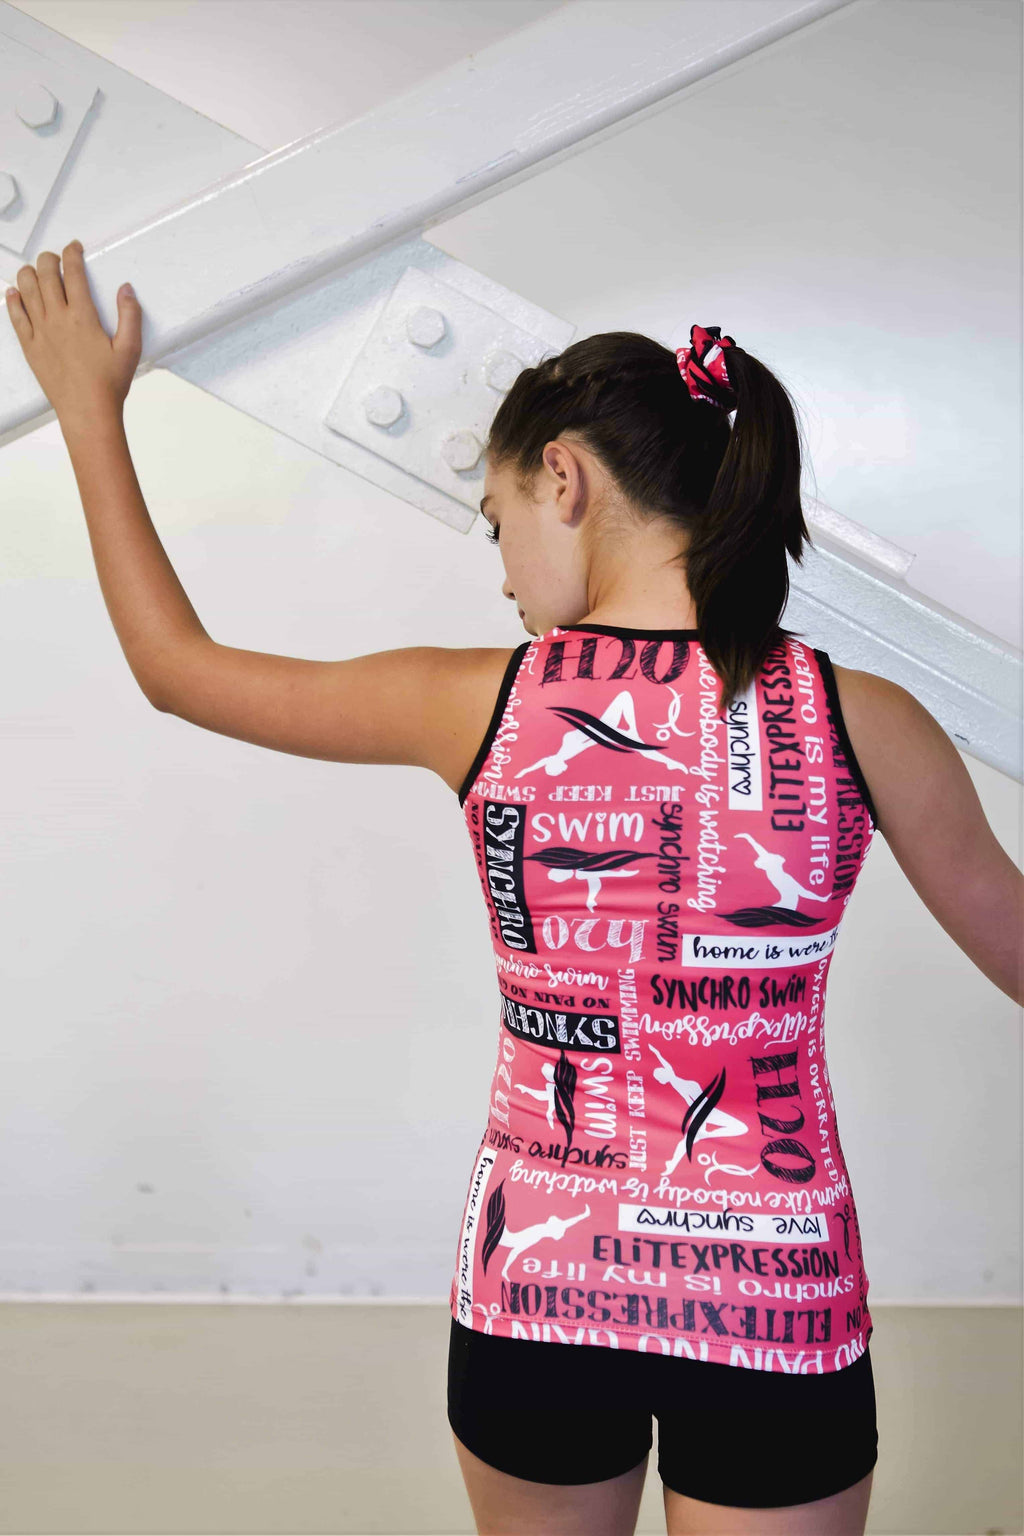 Swimming Training Tank Top (Pink) - Elite Xpression